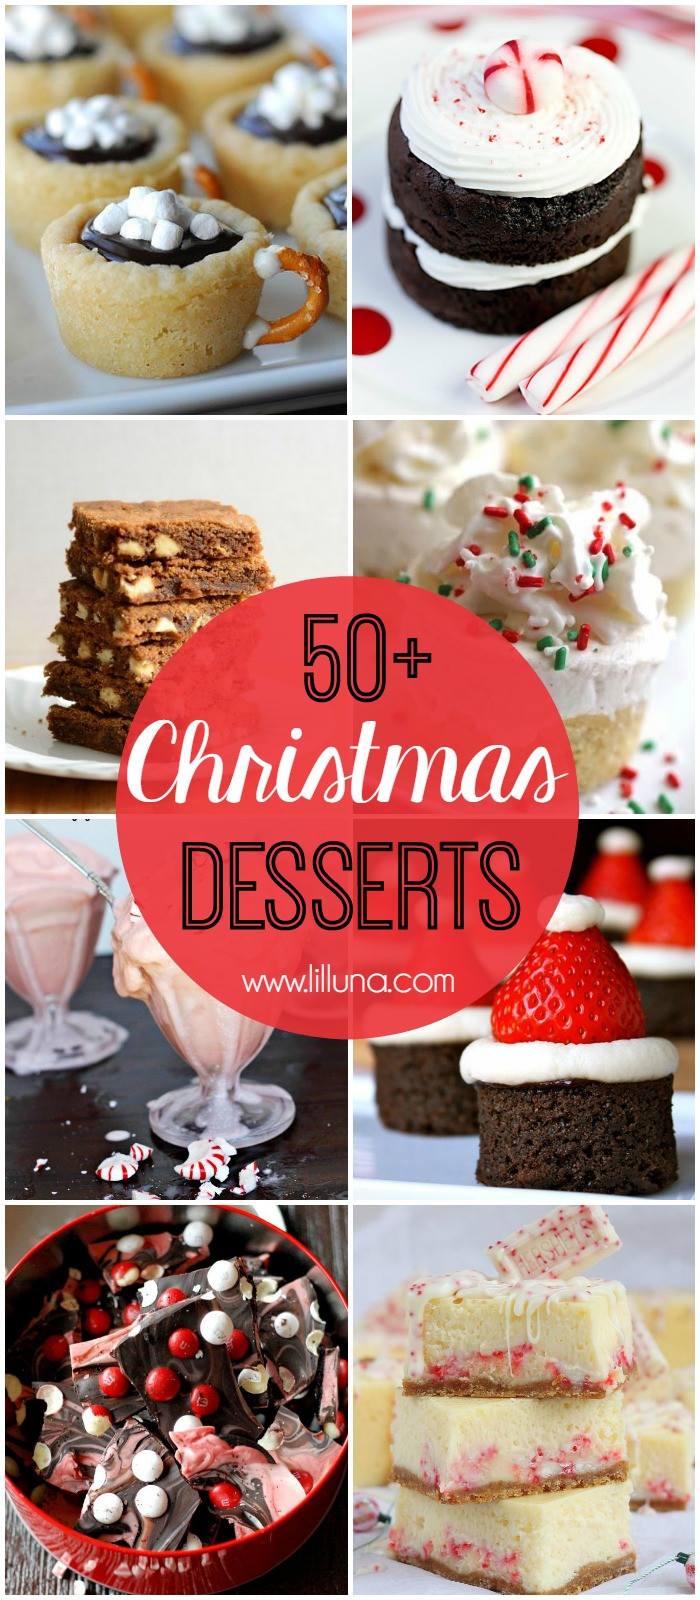 Christmas Dessert Ideas For Parties  Christmas Desserts